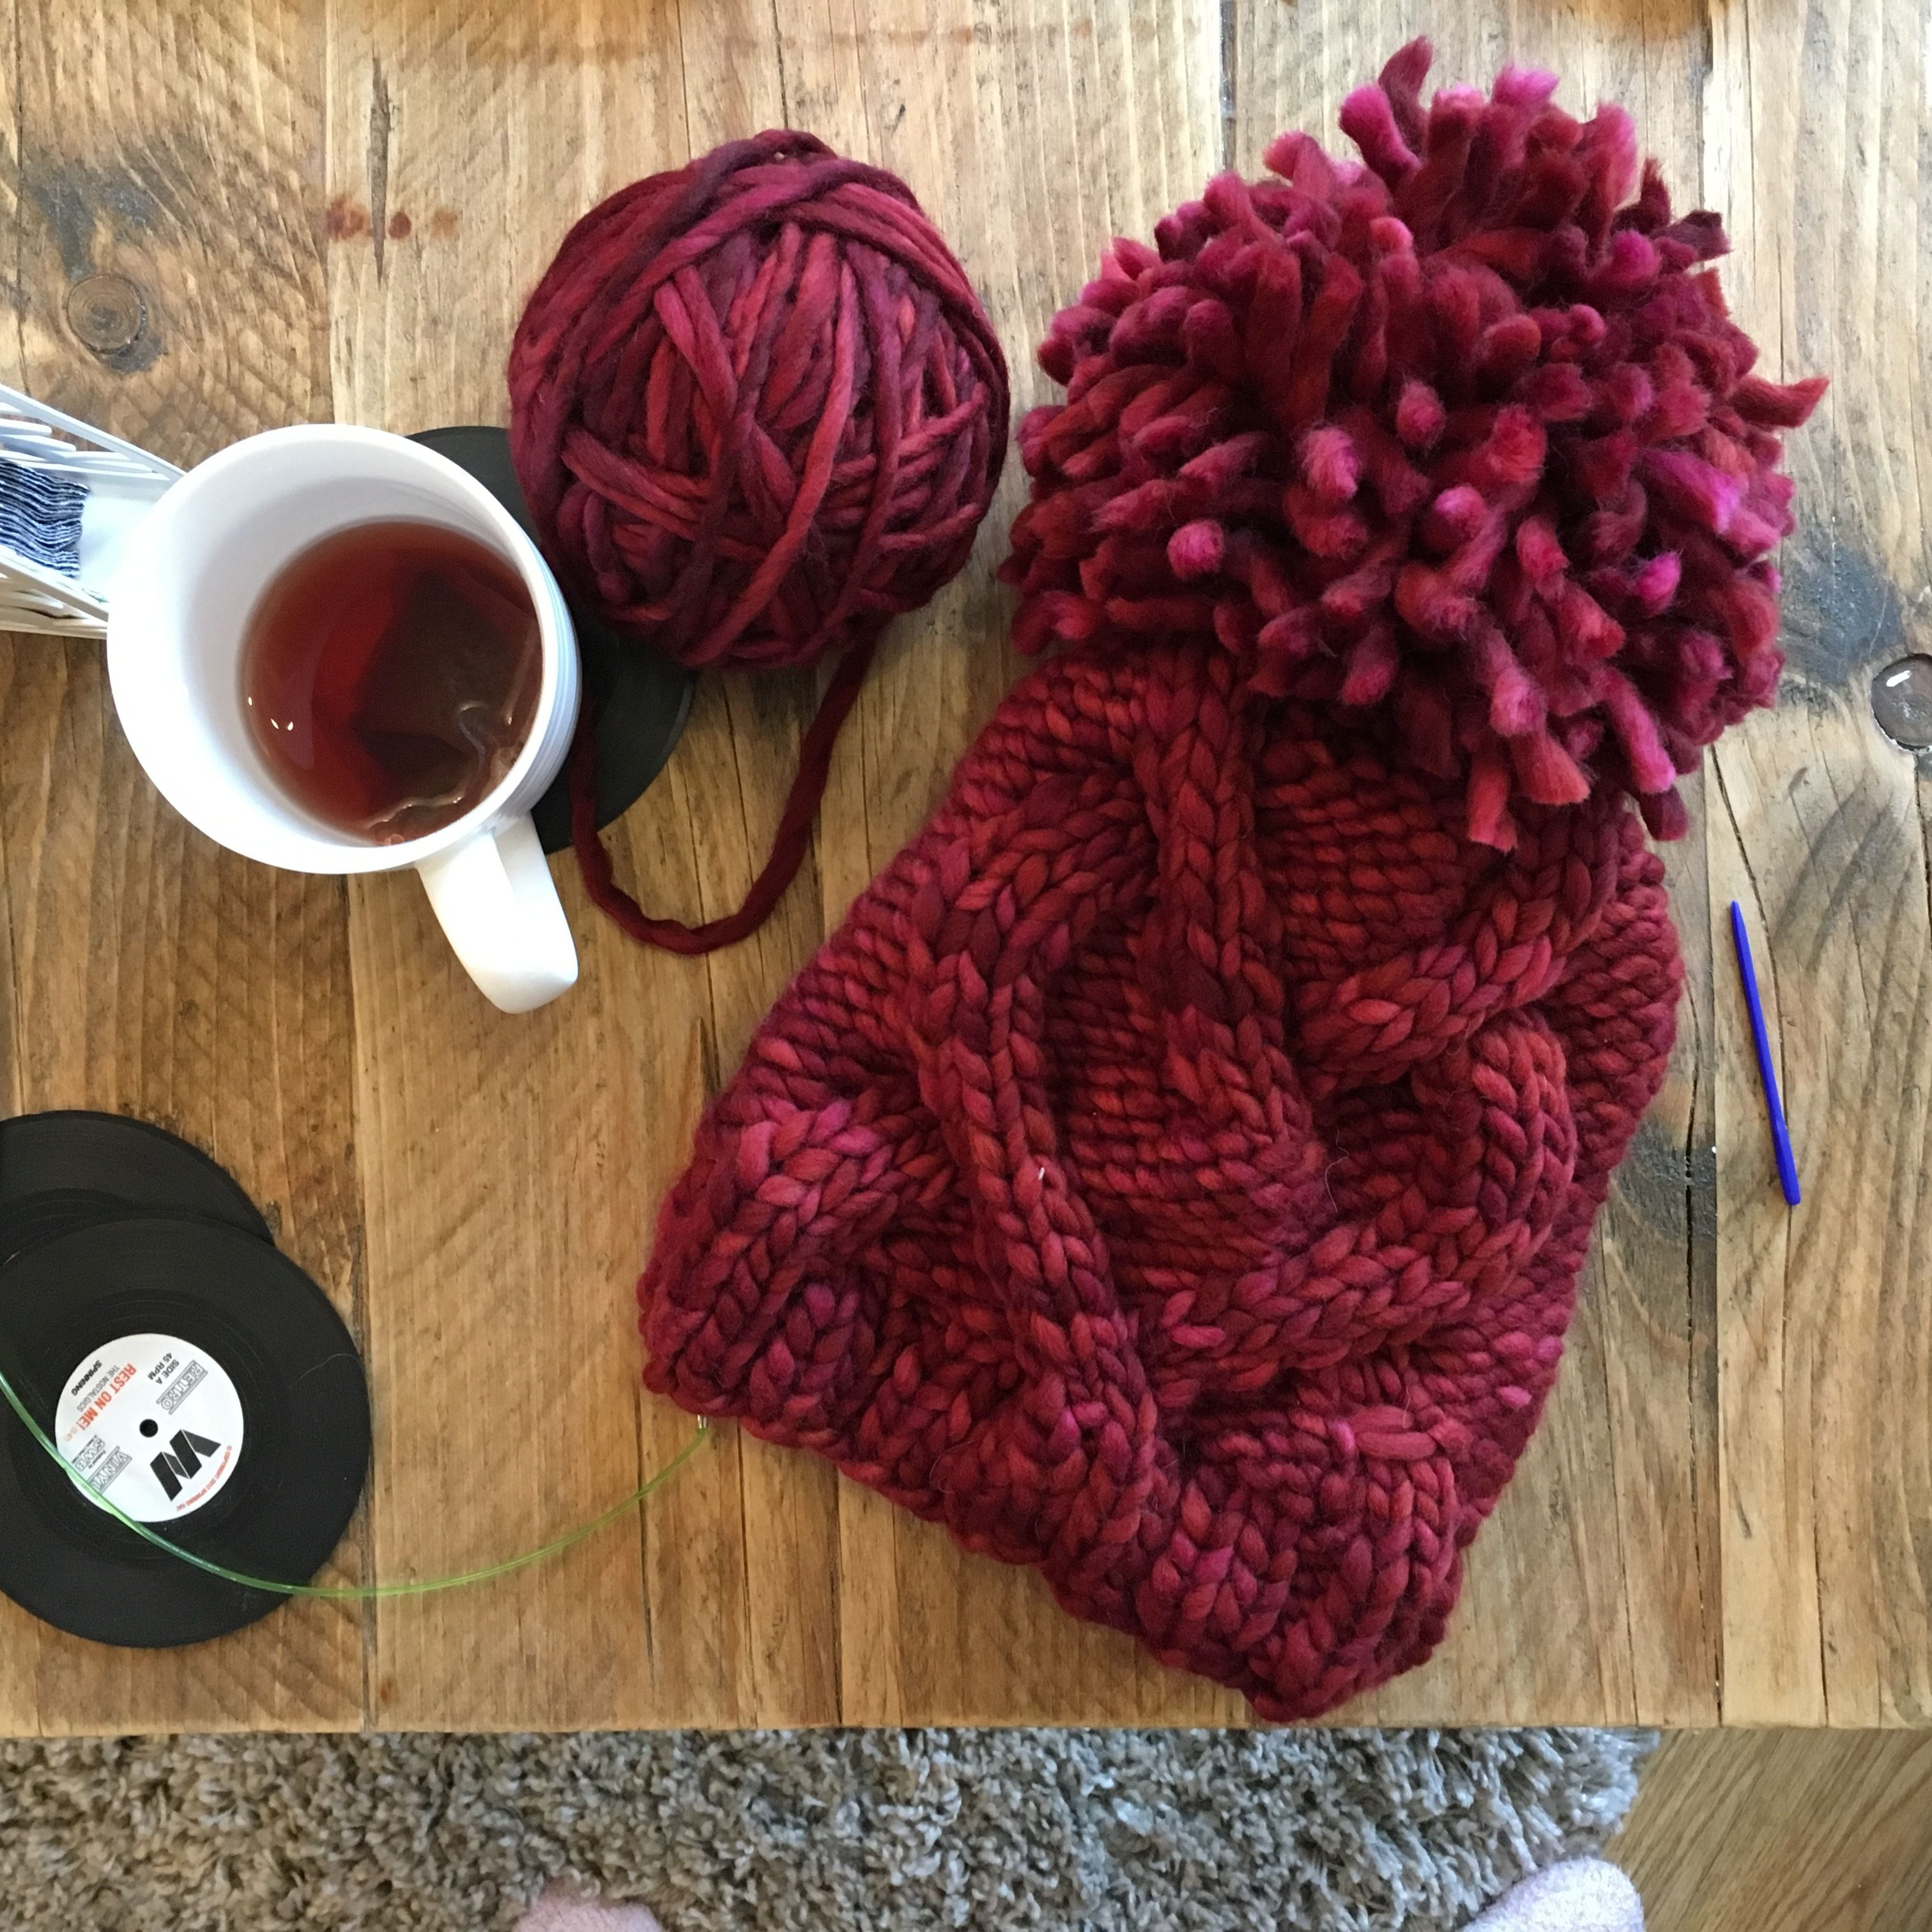 Red heart cable hat knitting project shared on the LoveKnitting Community.